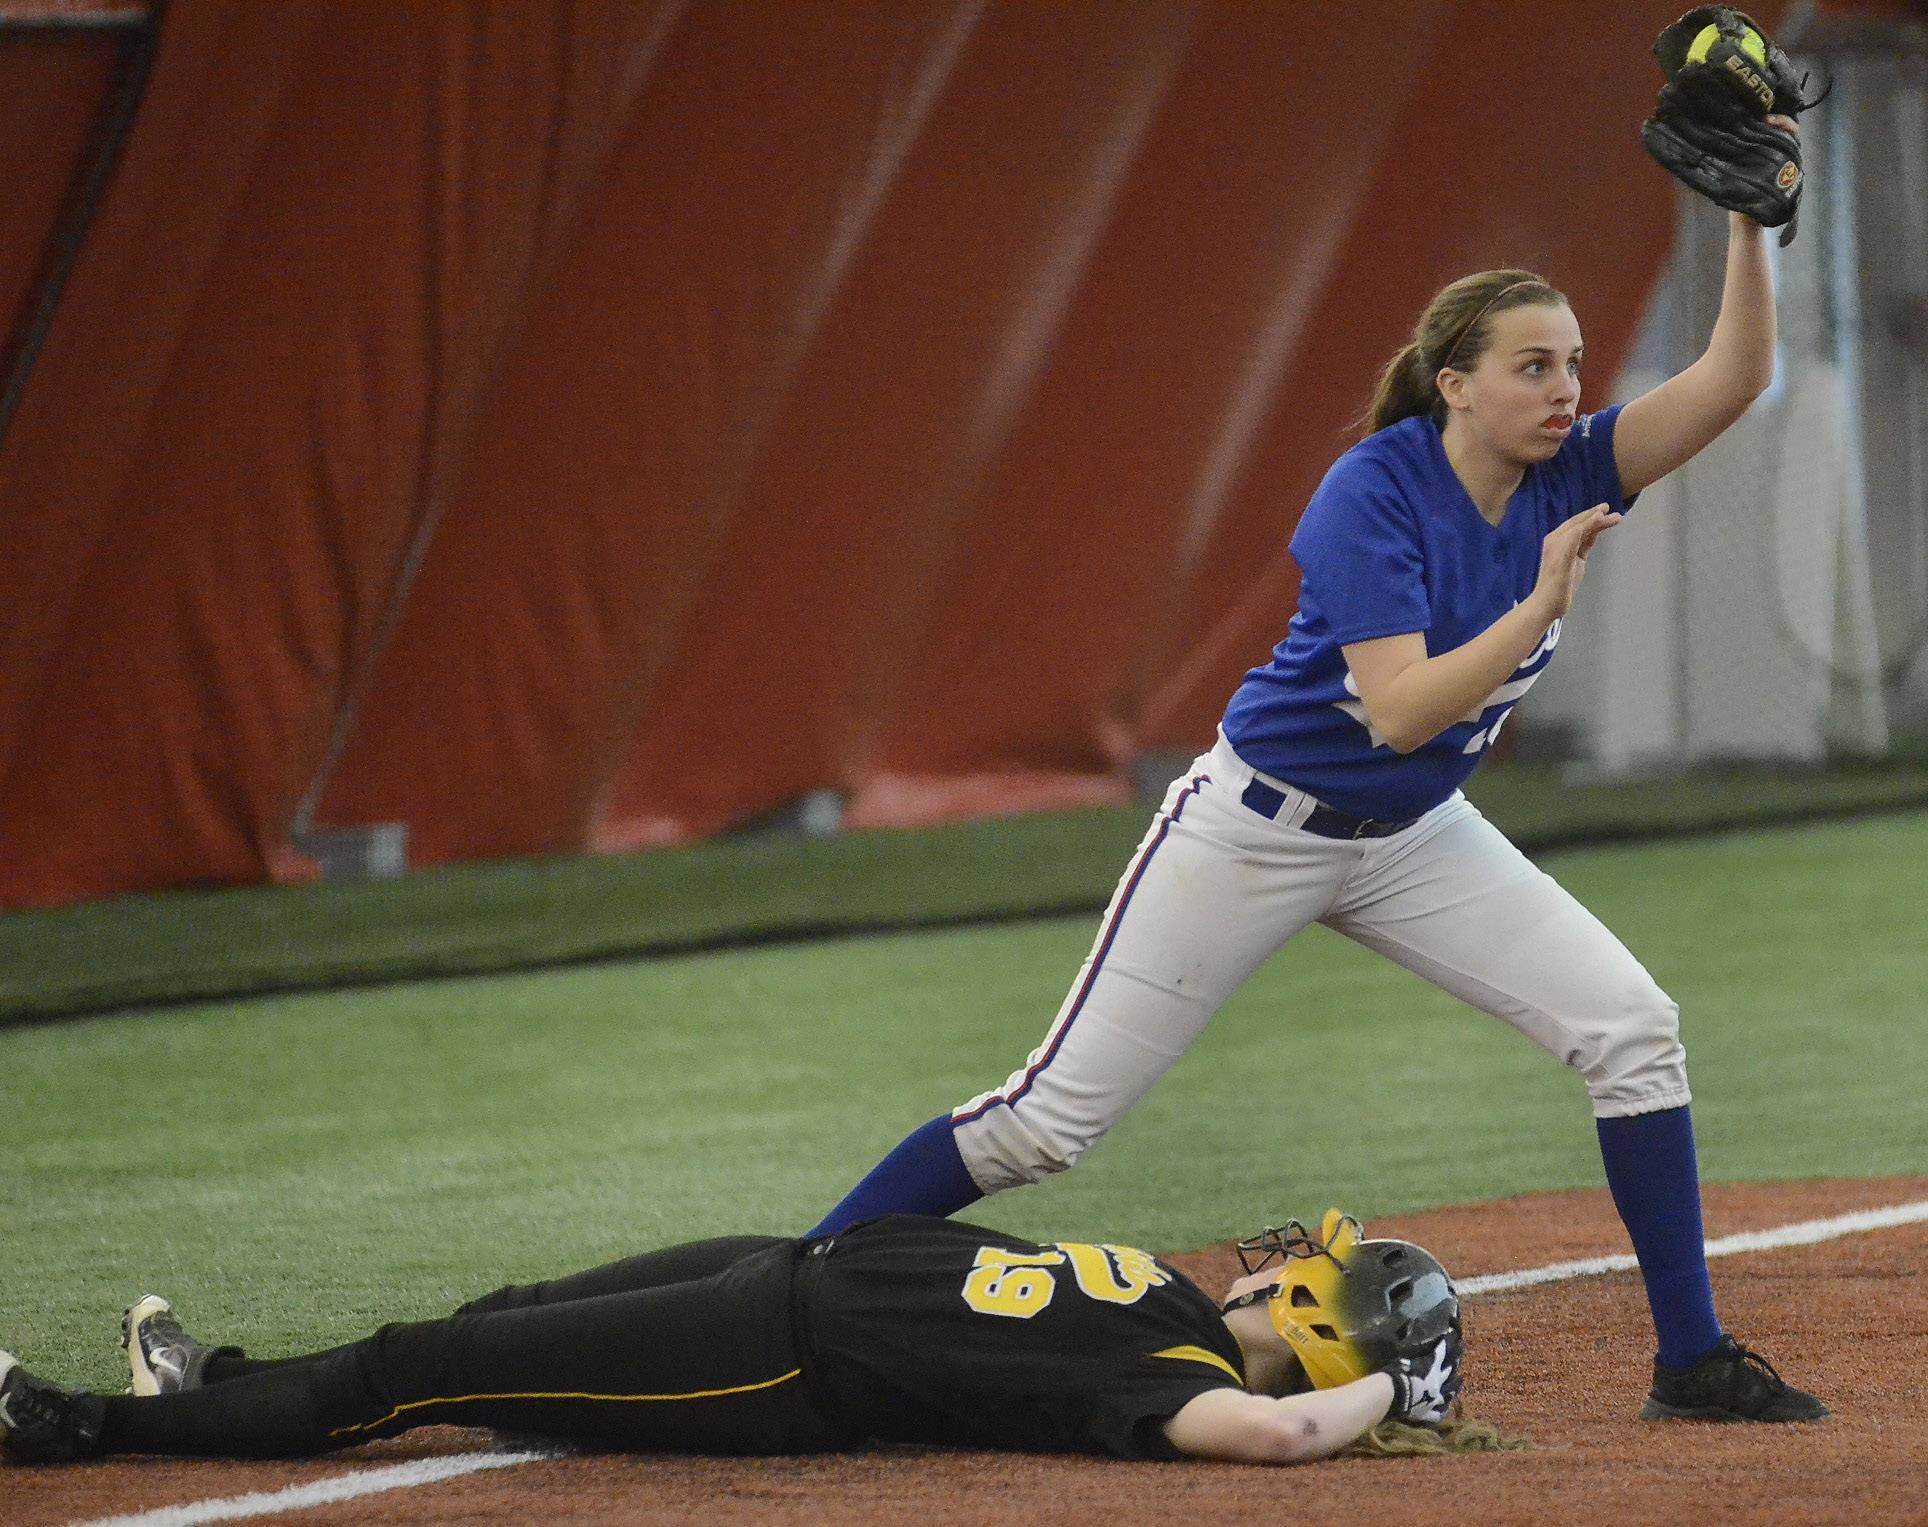 Stevenson's Dana Morgan is tagged out by Lakes third baseman Montana Mang to end the game, sealing the Eagles' 7-5 win at The Dome in Rosemont on Thursday.